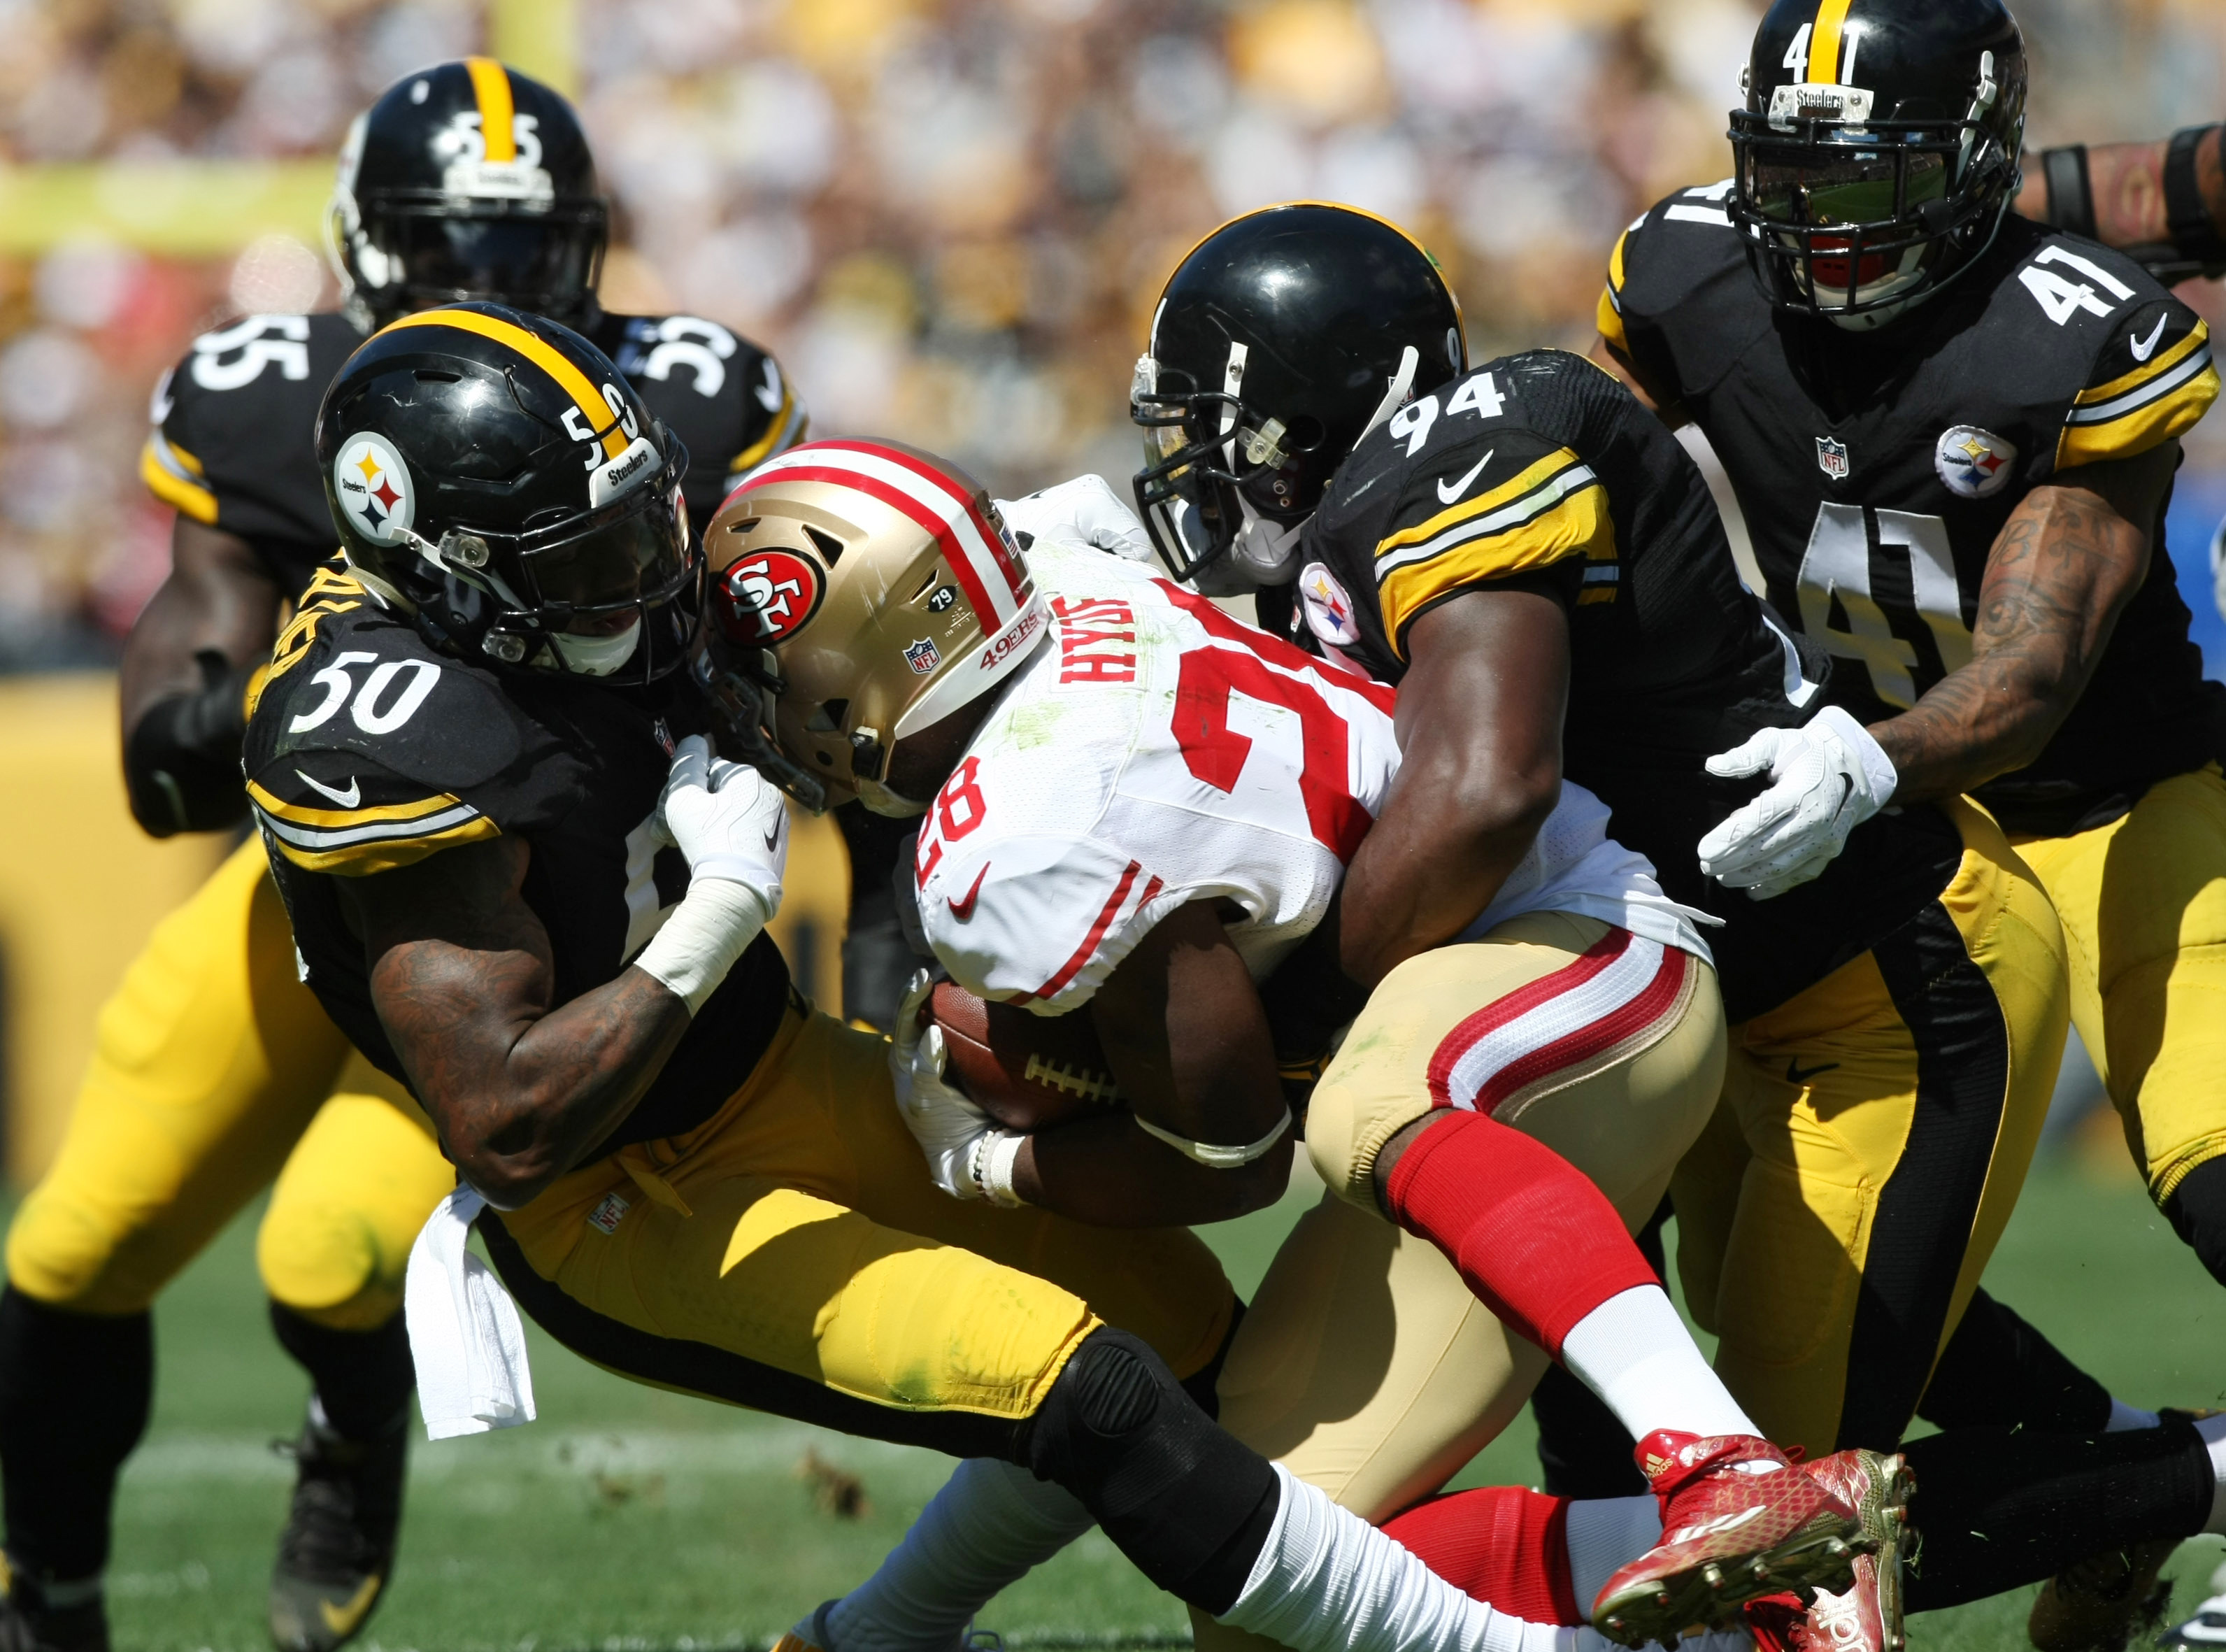 8815129-nfl-san-francisco-49ers-at-pittsburgh-steelers